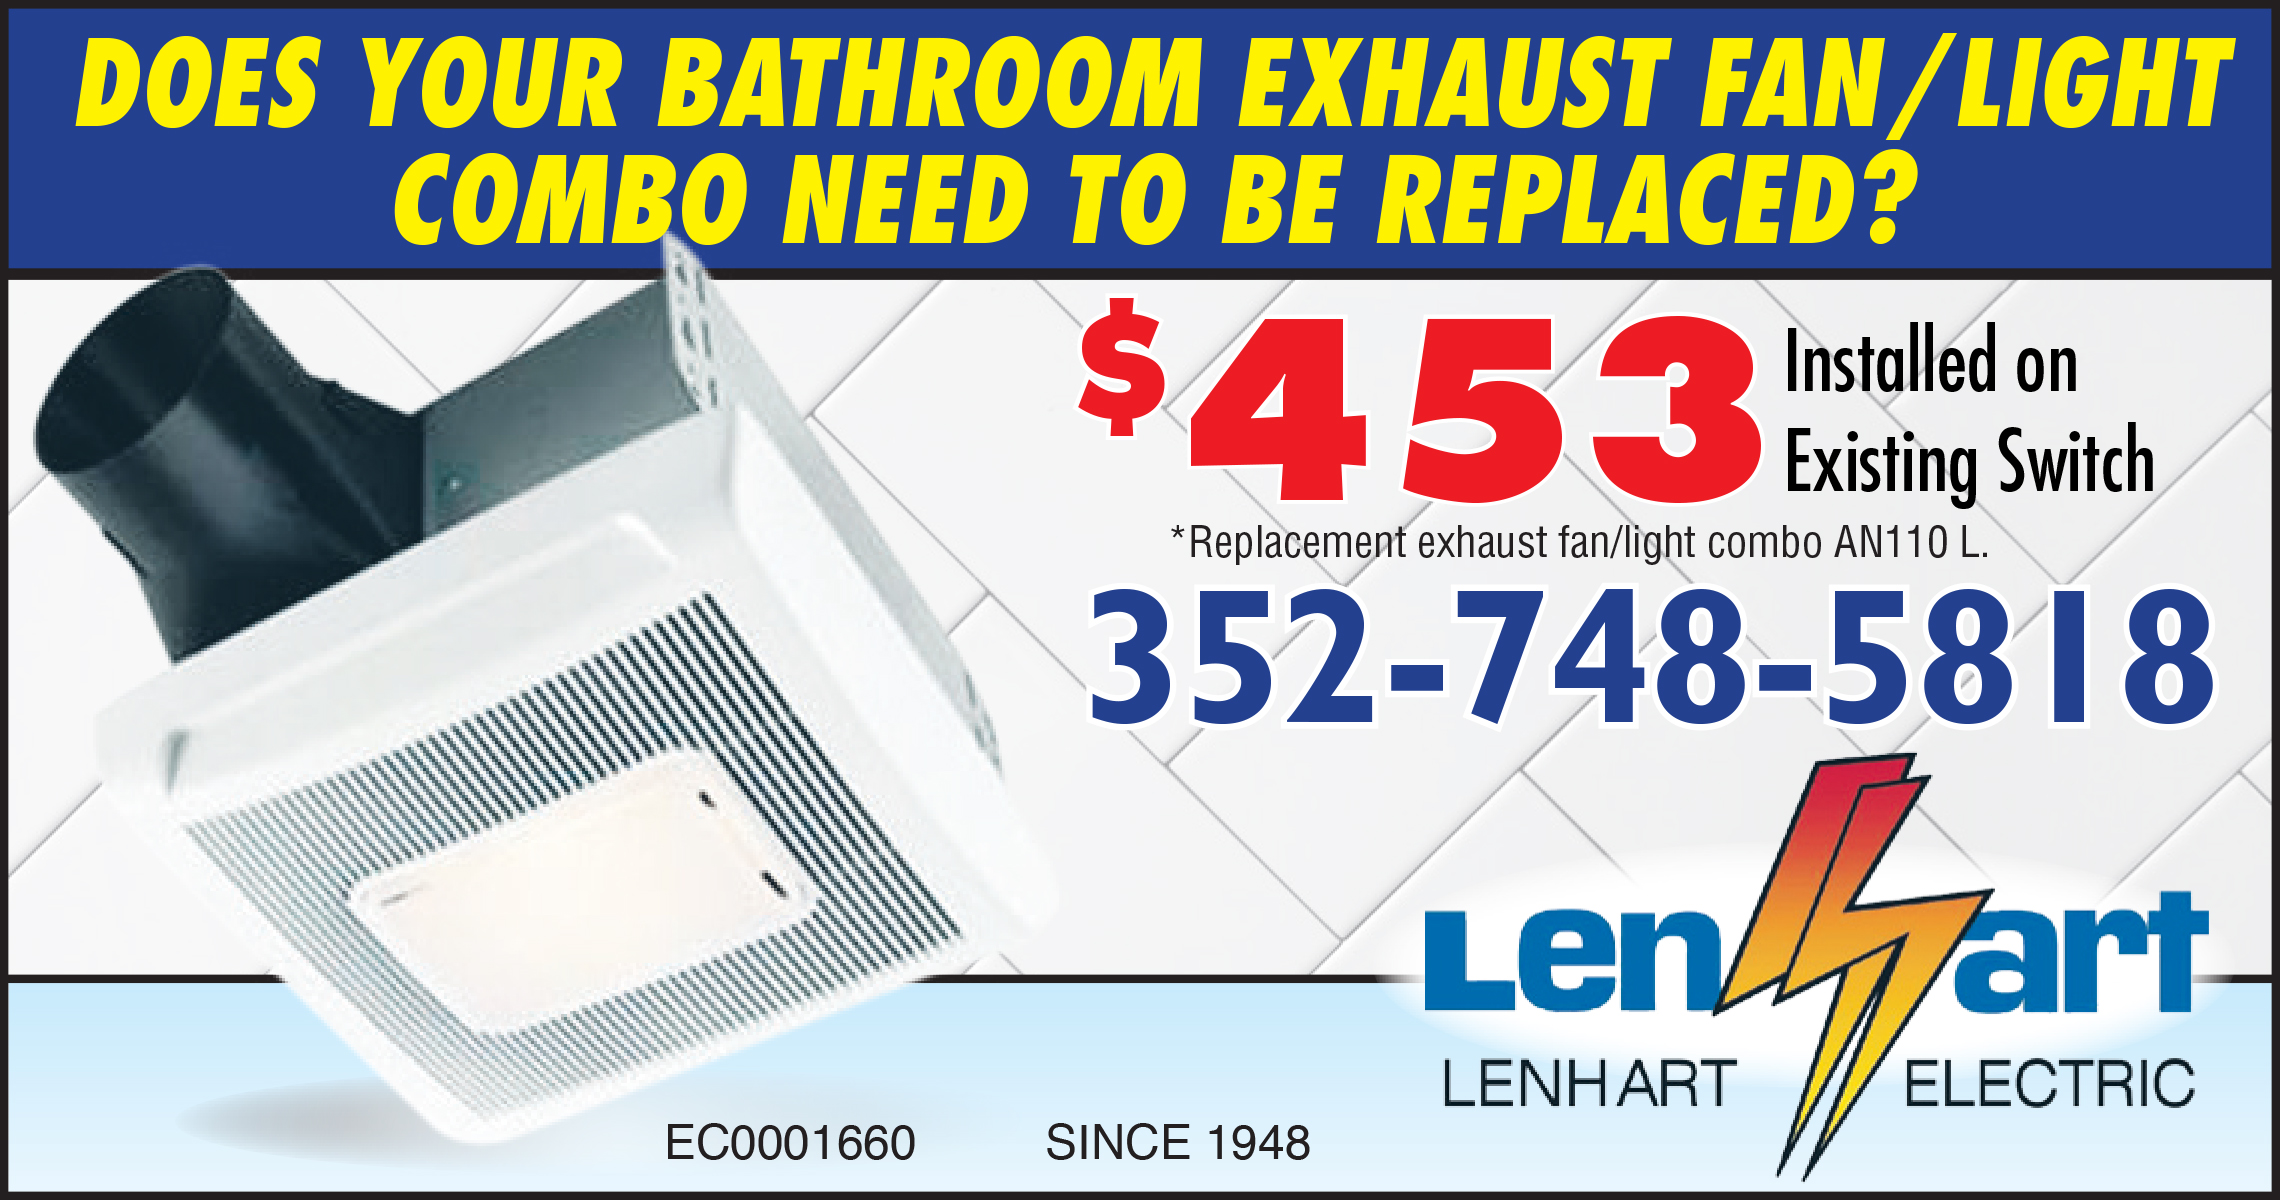 Lenhart Electric Bathroom exhaust